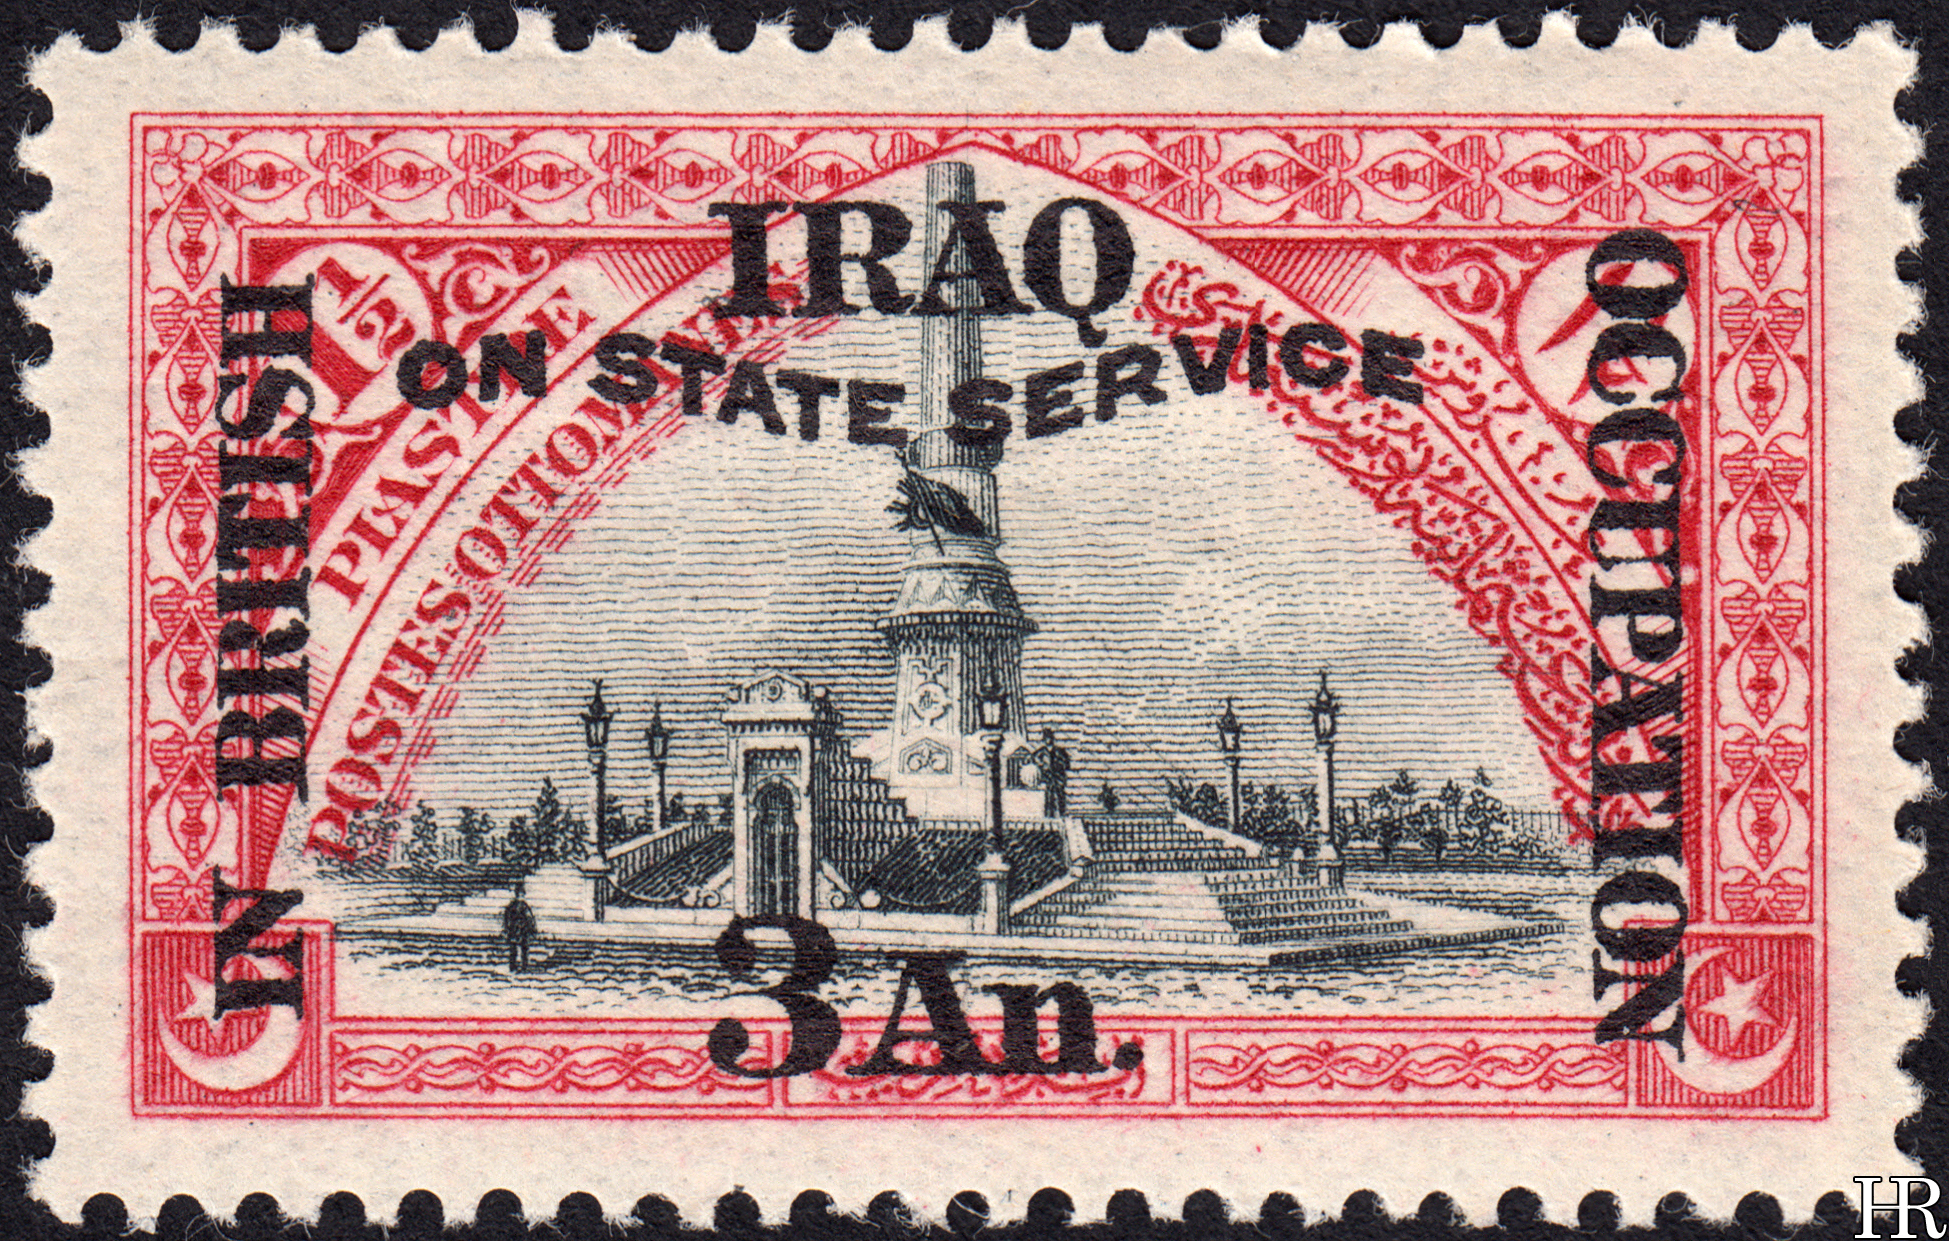 This issue was the first of many to be additionally overprinted for the purpose of franking official mail: the intention, I understand, was that the overprint would prevent government employees from appropriating stamps for their private purposes.